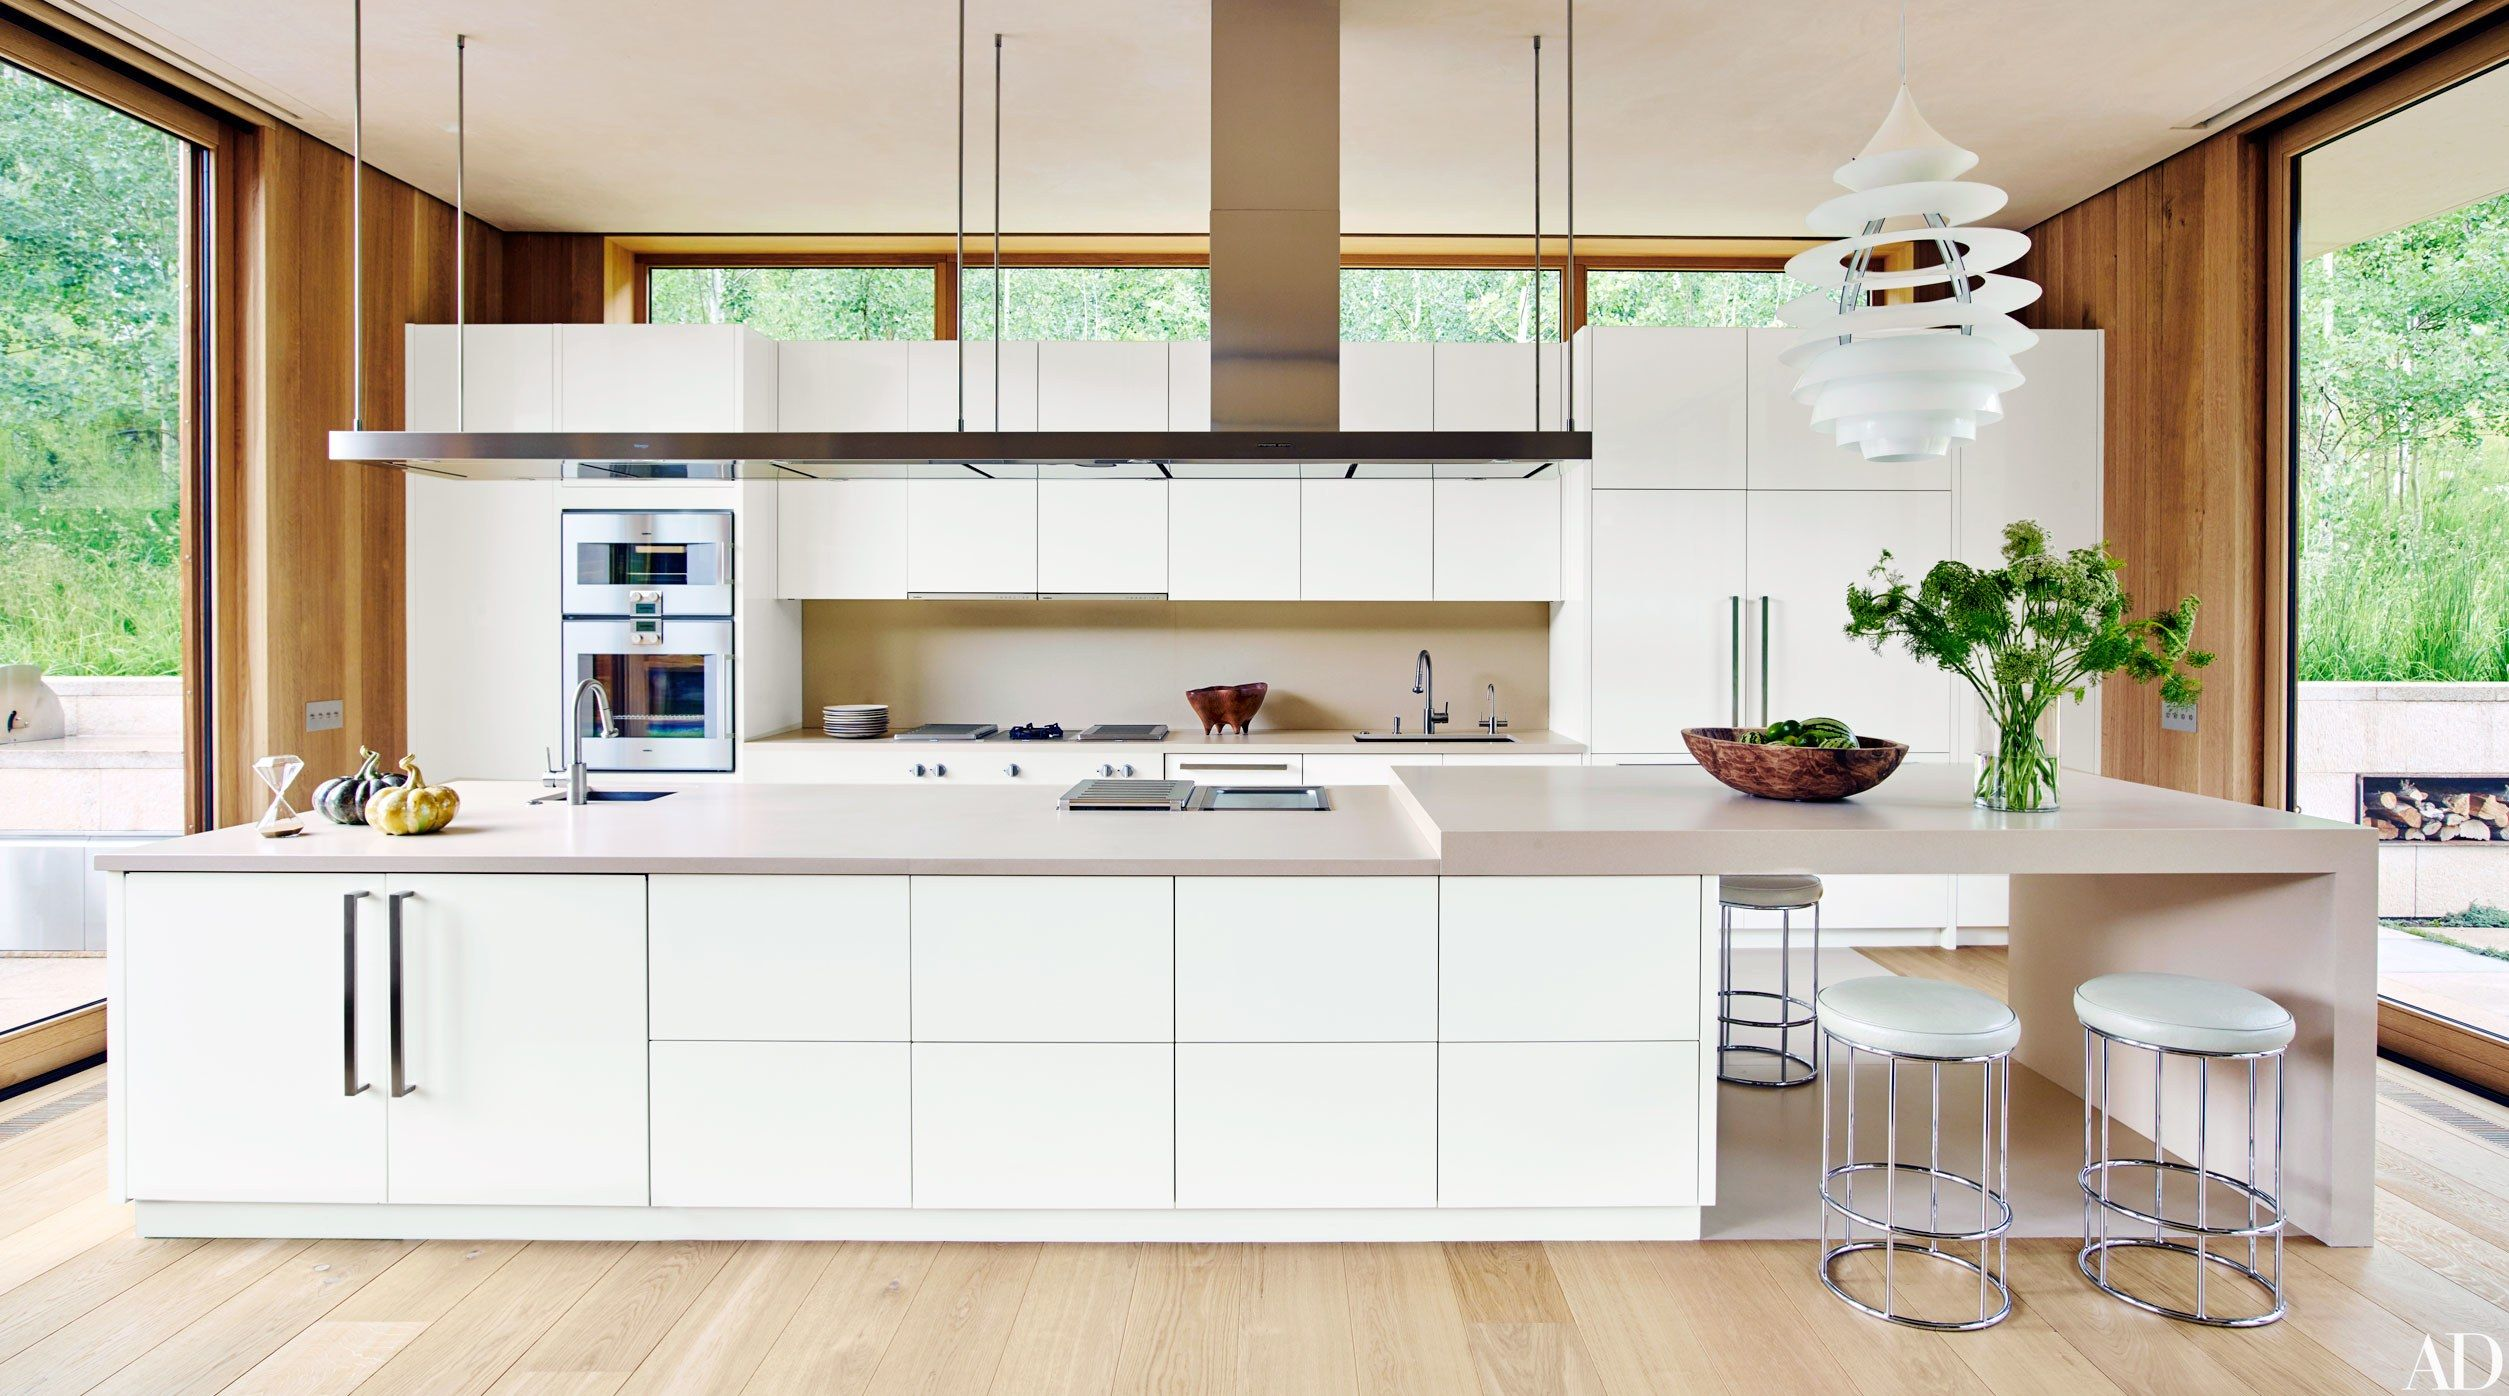 Modern Kitchen Images Architectural Digest This Aspen Home Is A Nature Lover's Dream  Architectural Digest